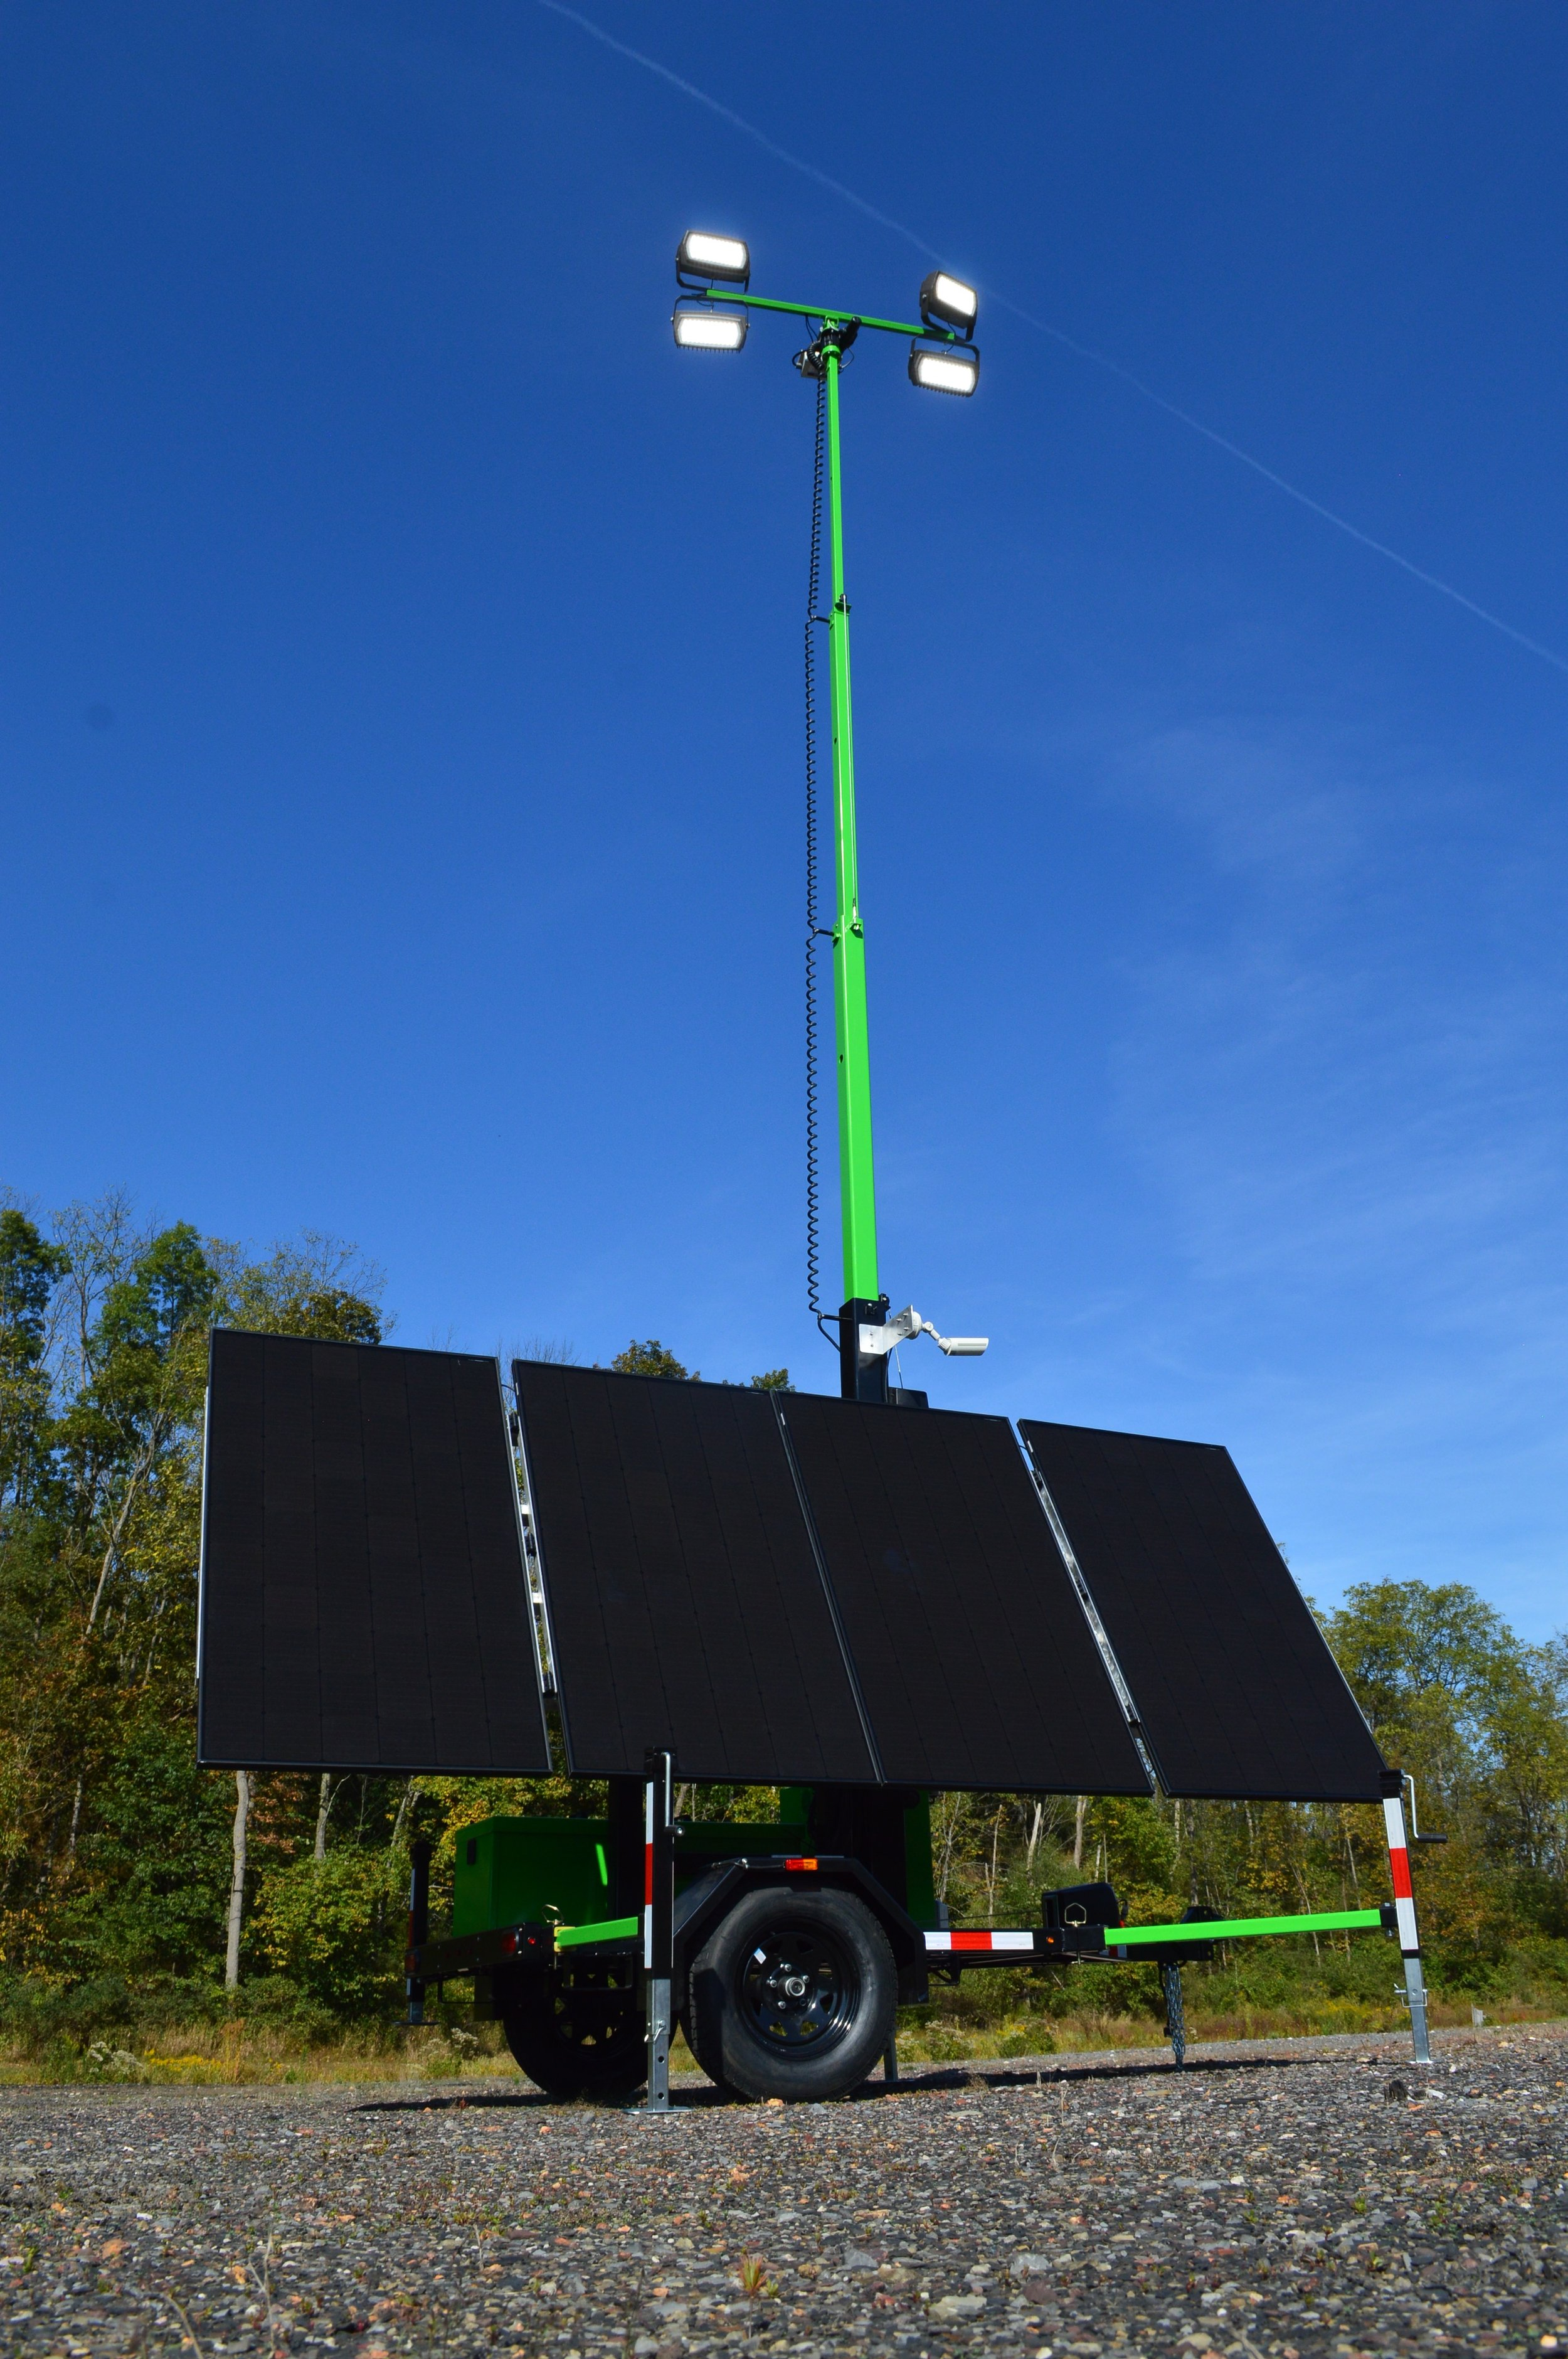 ZERO DIESEL. - When we say ZERO DIESEL, we mean it. That includes diesel used in generators, commonly deployed to recharge our competitor's solar light towers. Unlike the others, Dominight's NG Solar light tower is a 100% self-sustaining, emission free alternative to diesel light towers. A 1,300 watt solar array, coupled to a 10 kilo-watt lithium iron phosphate battery bank, enables Dominight's NG Solar tower to recharge daily, anywhere in the world.